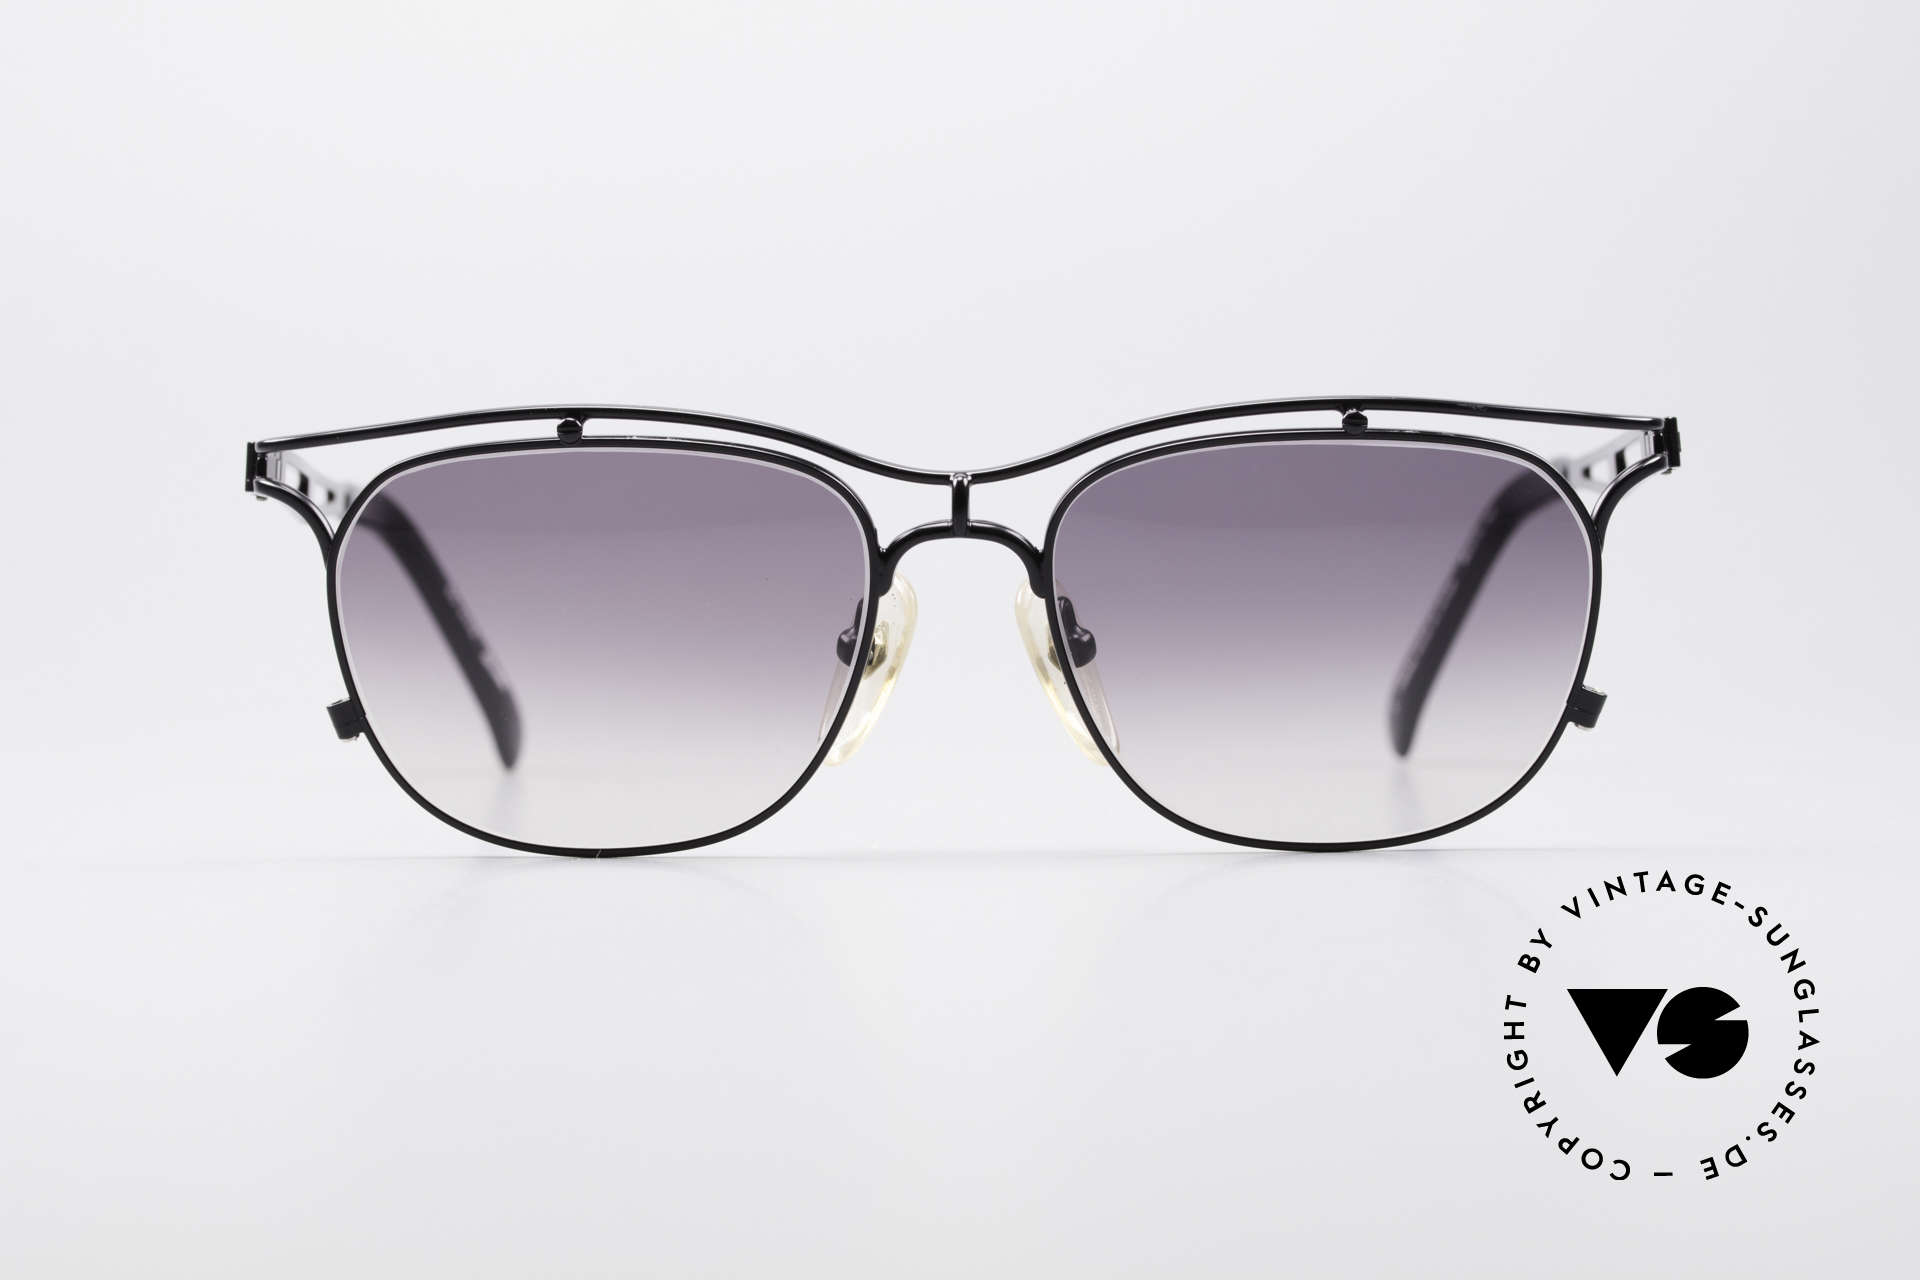 Jean Paul Gaultier 55-2178 No Retro JPG Vintage Frame, tangible TOP-notch-quality (frame made in Japan), Made for Men and Women